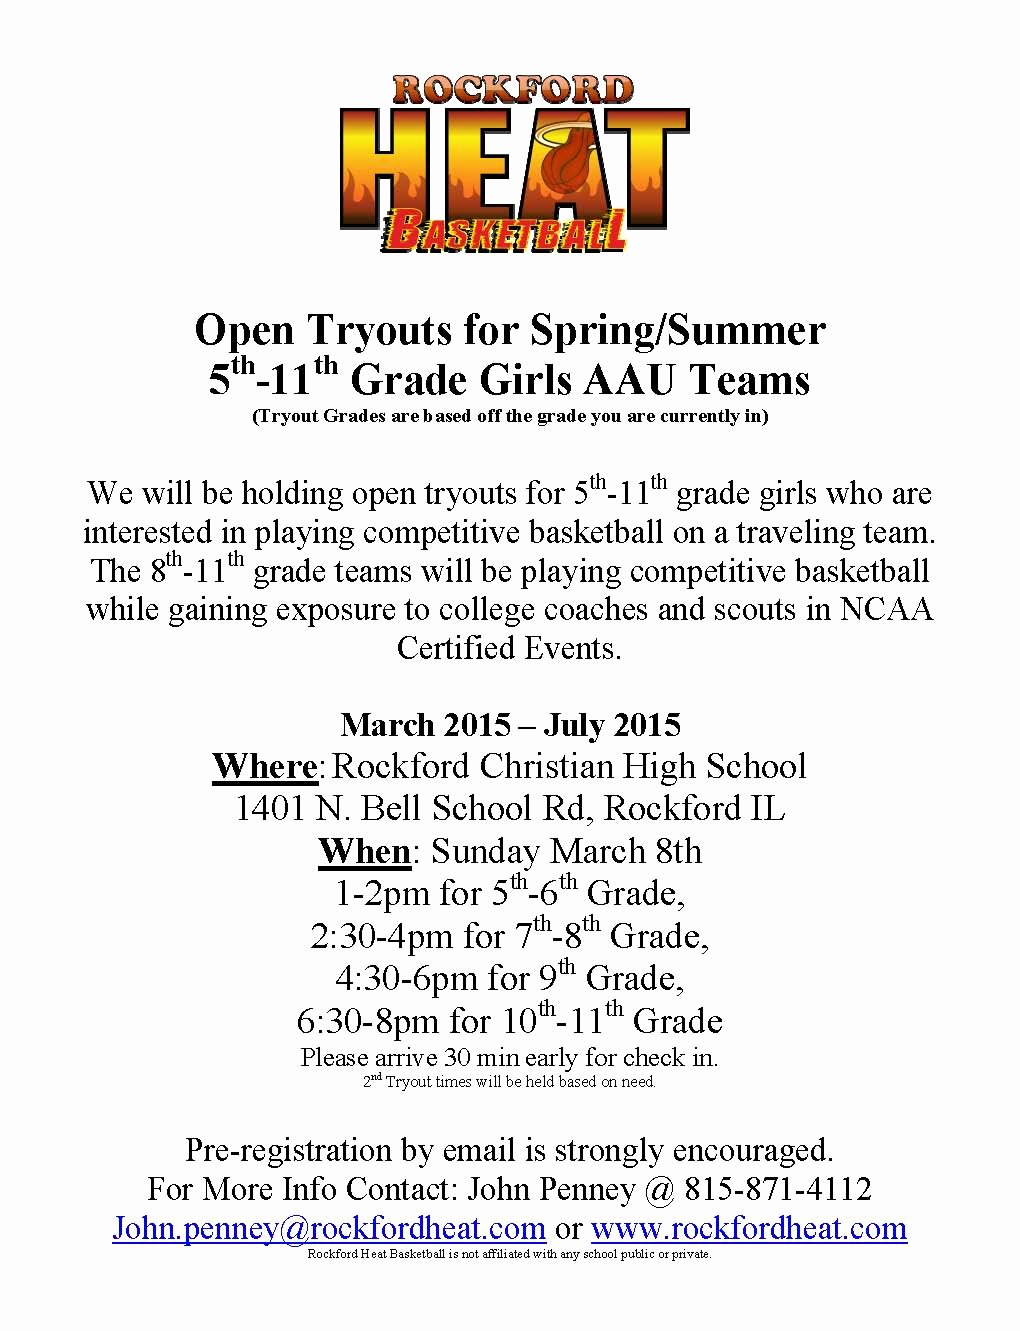 Basketball Tryout Flyer Template Unique Rockford Heat Spring Summer Tryout Dates Posted